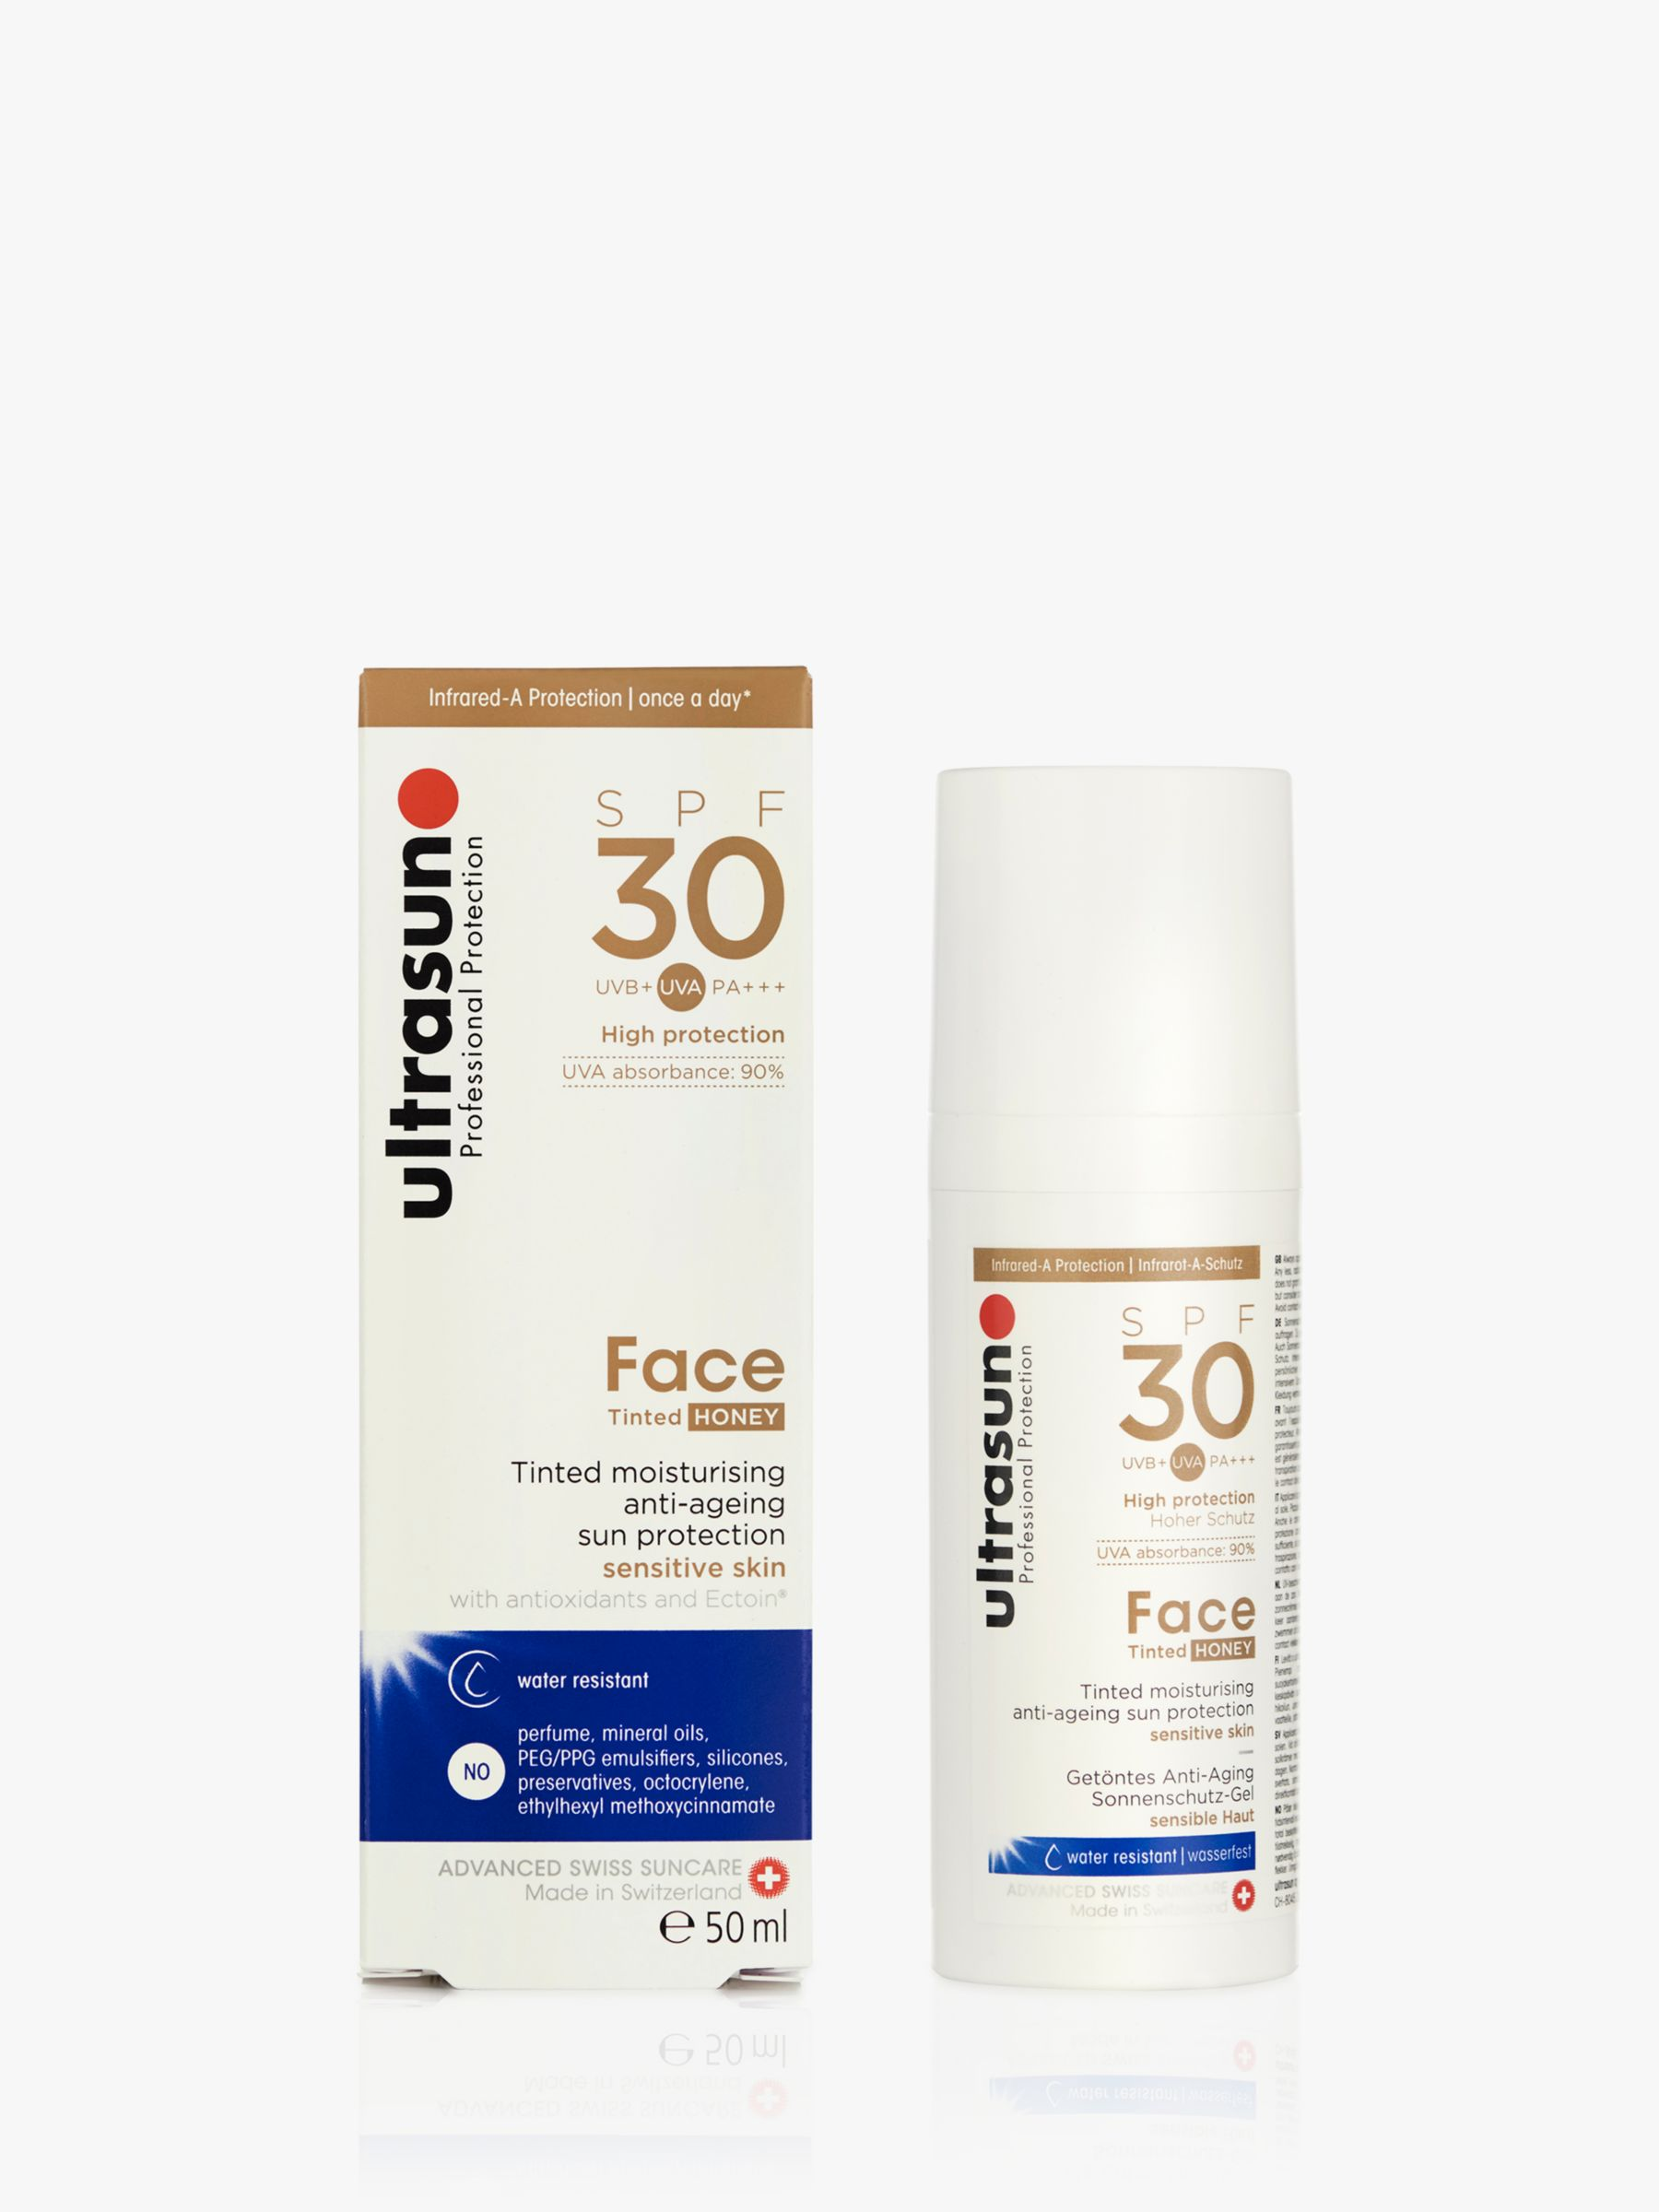 Ultrasun Ultrasun SPF 30 Tinted Face Sun Cream, 50ml